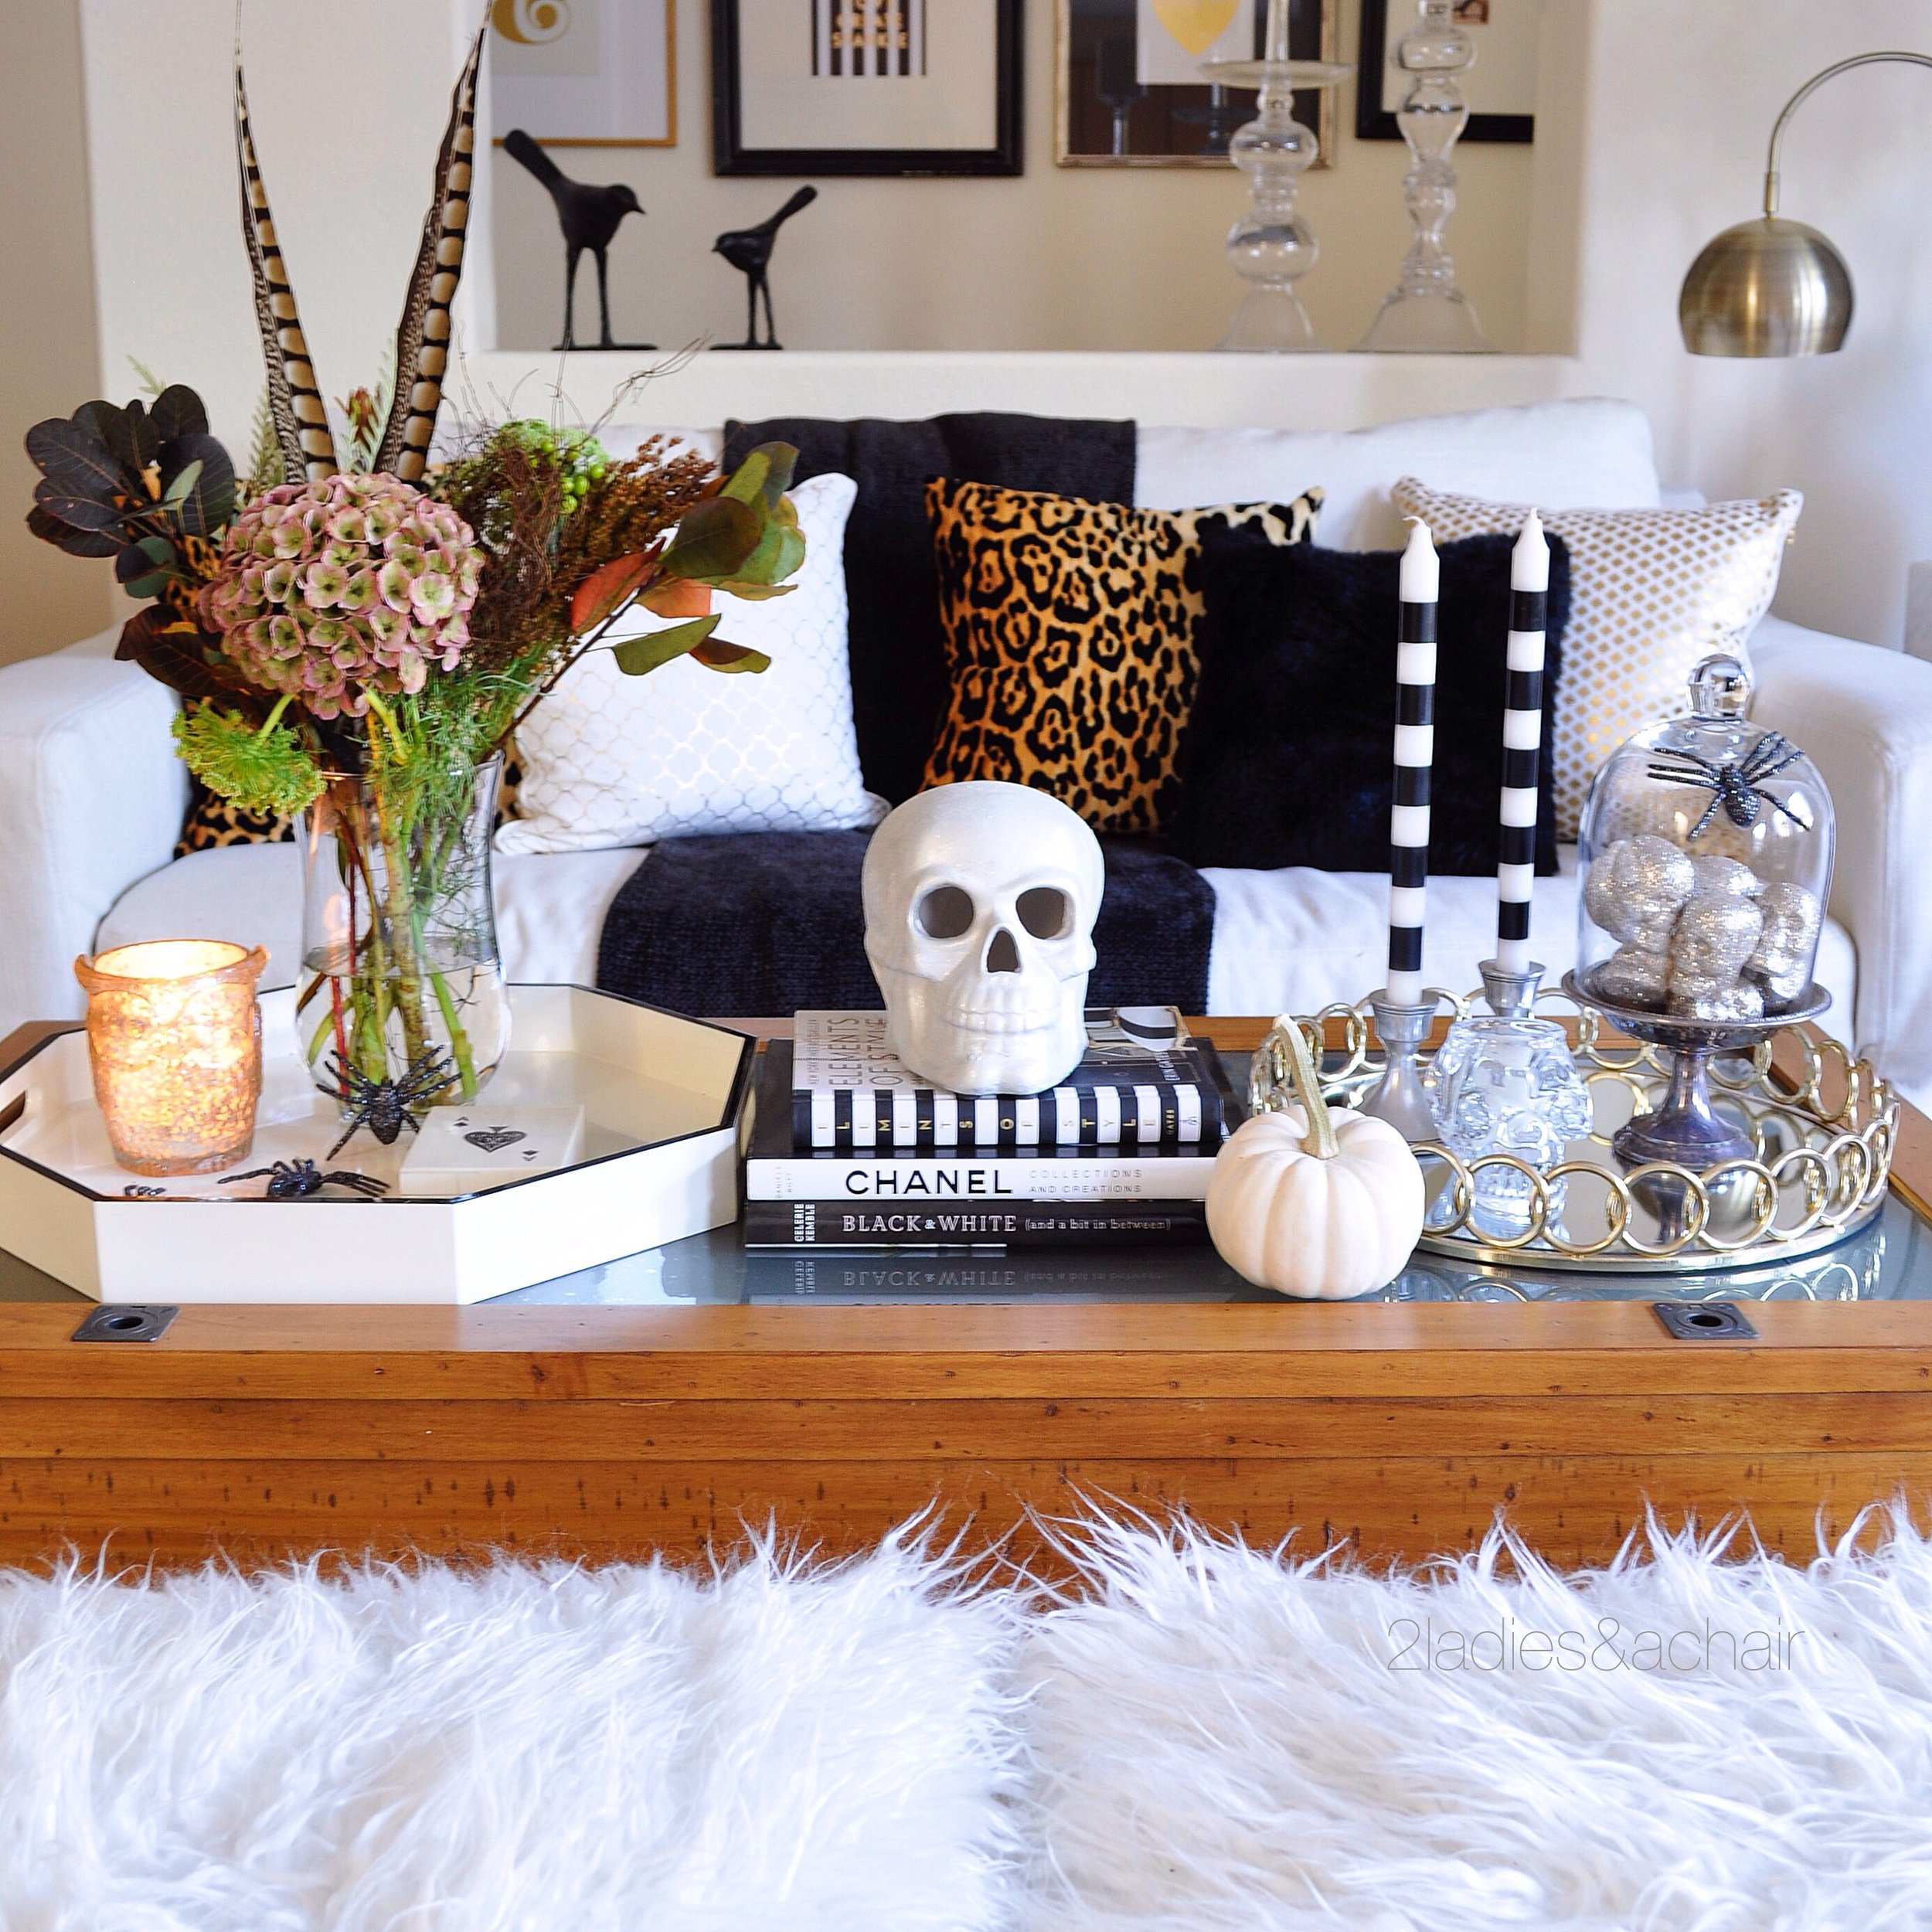 Entertaining Around the Coffee Table — 2 La s & A Chair